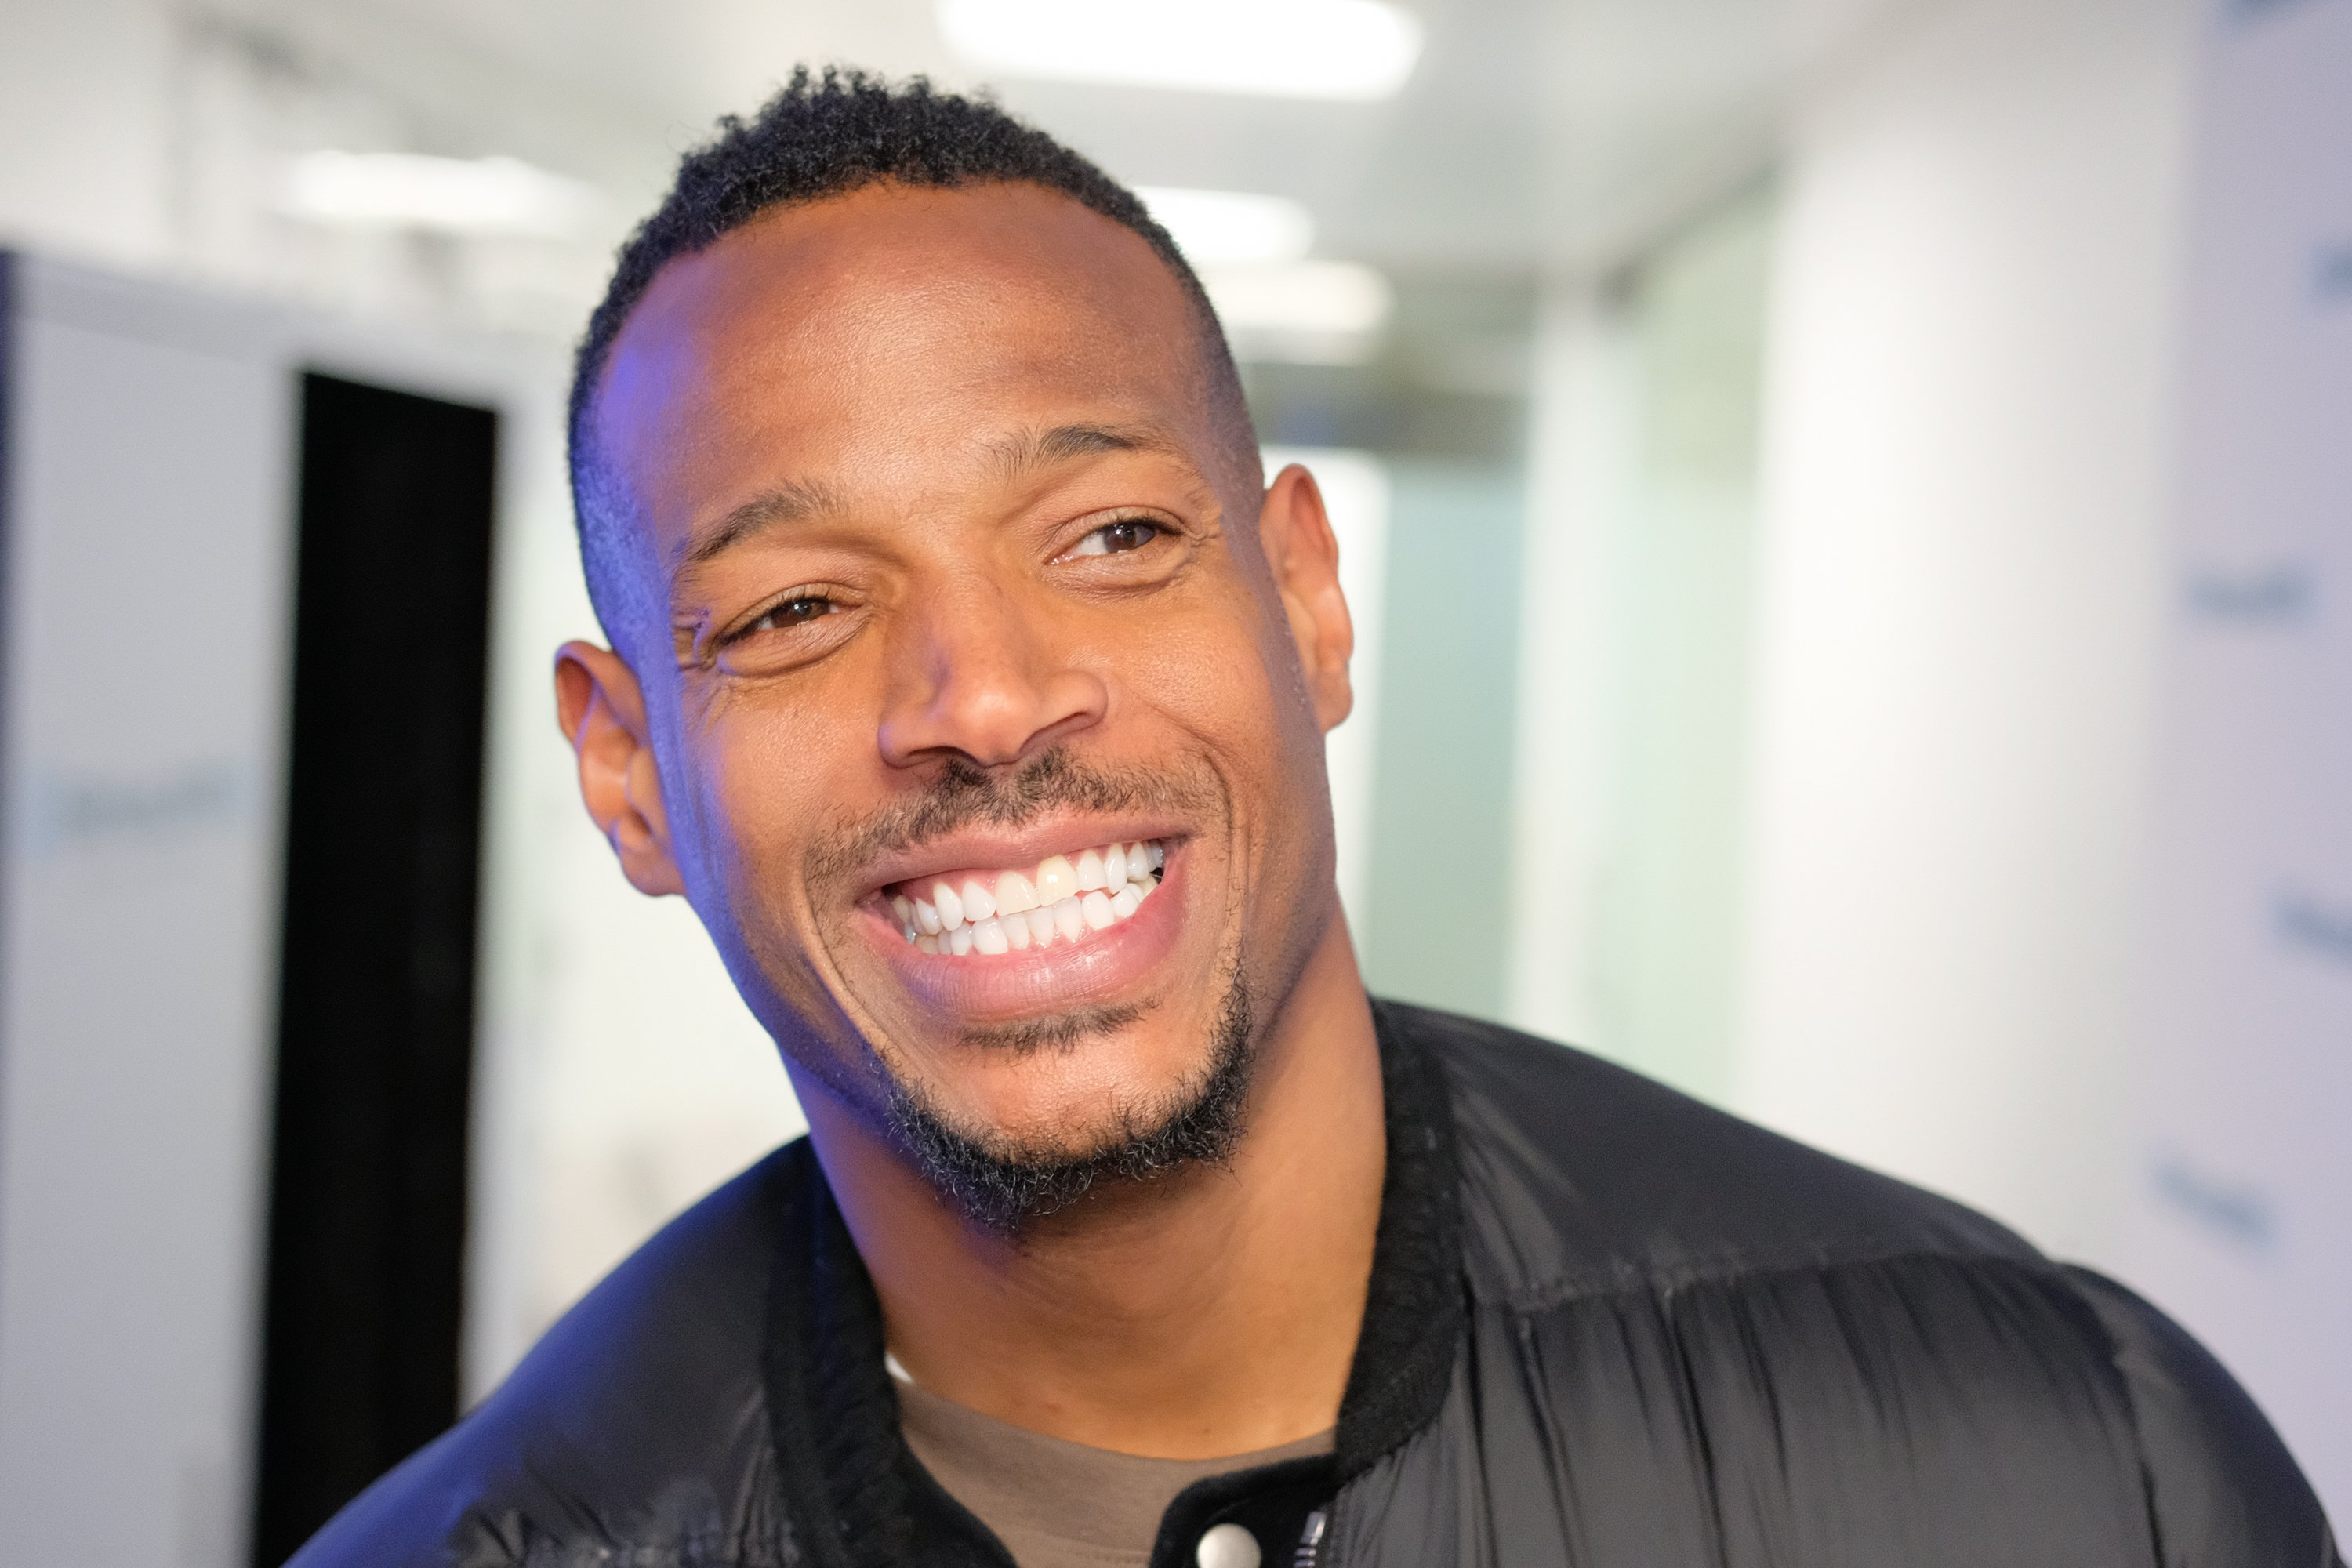 Marlon Wayans visits the SiriusXM Studios on March 2, 2018 in New York City. | Source: Getty Images